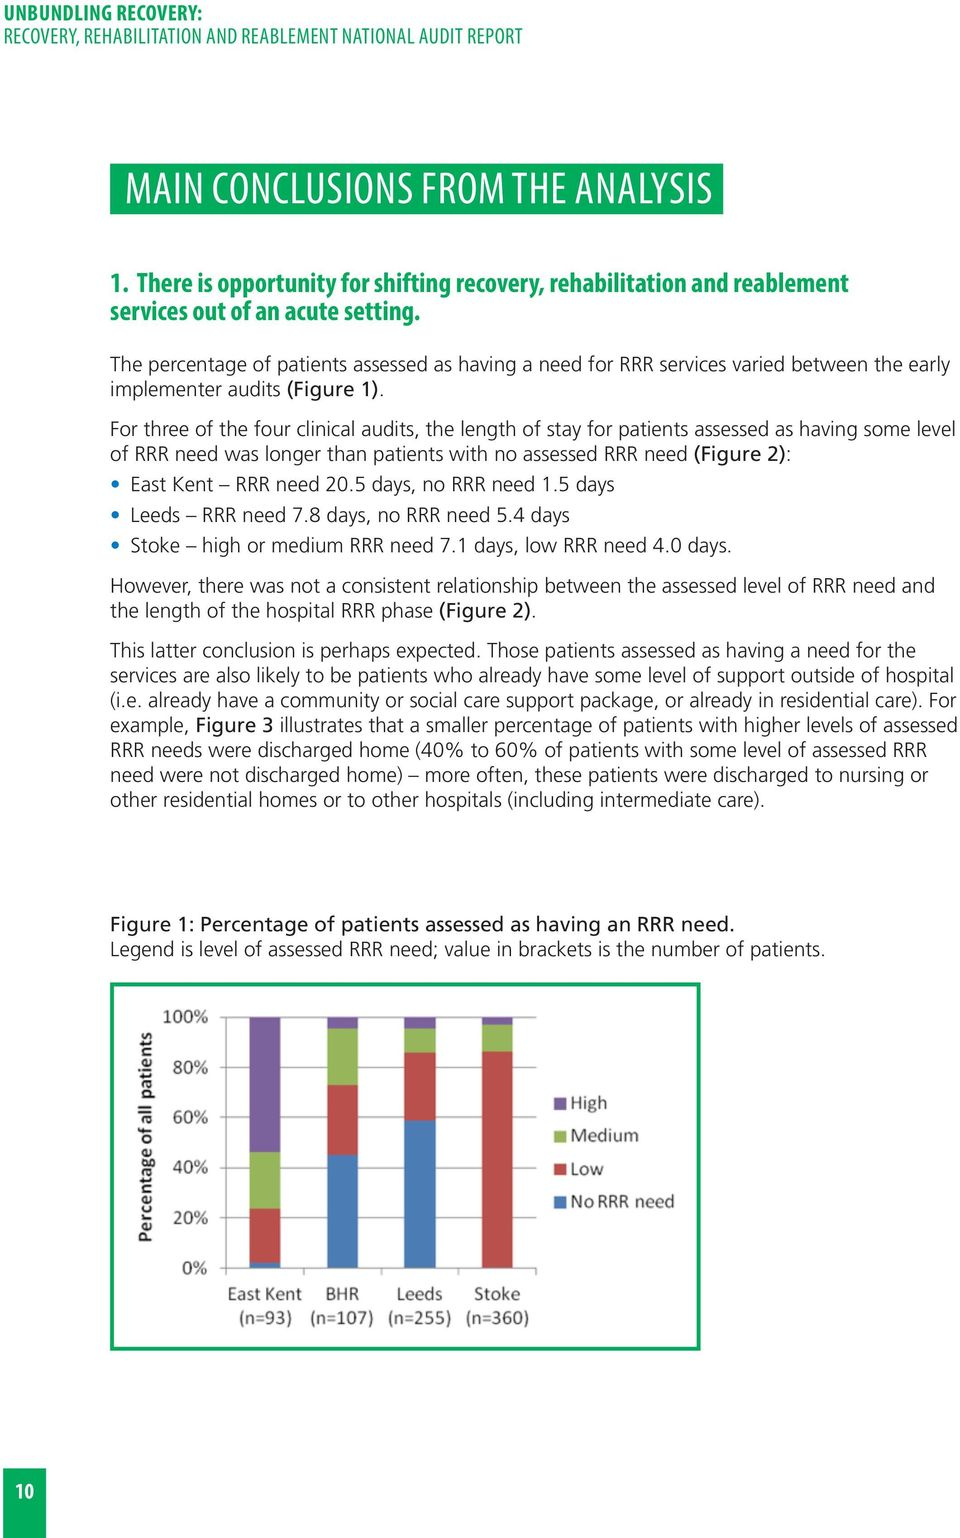 For three of the four clinical audits, the length of stay for patients assessed as having some level of RRR need was longer than patients with no assessed RRR need (Figure 2): East Kent RRR need 20.